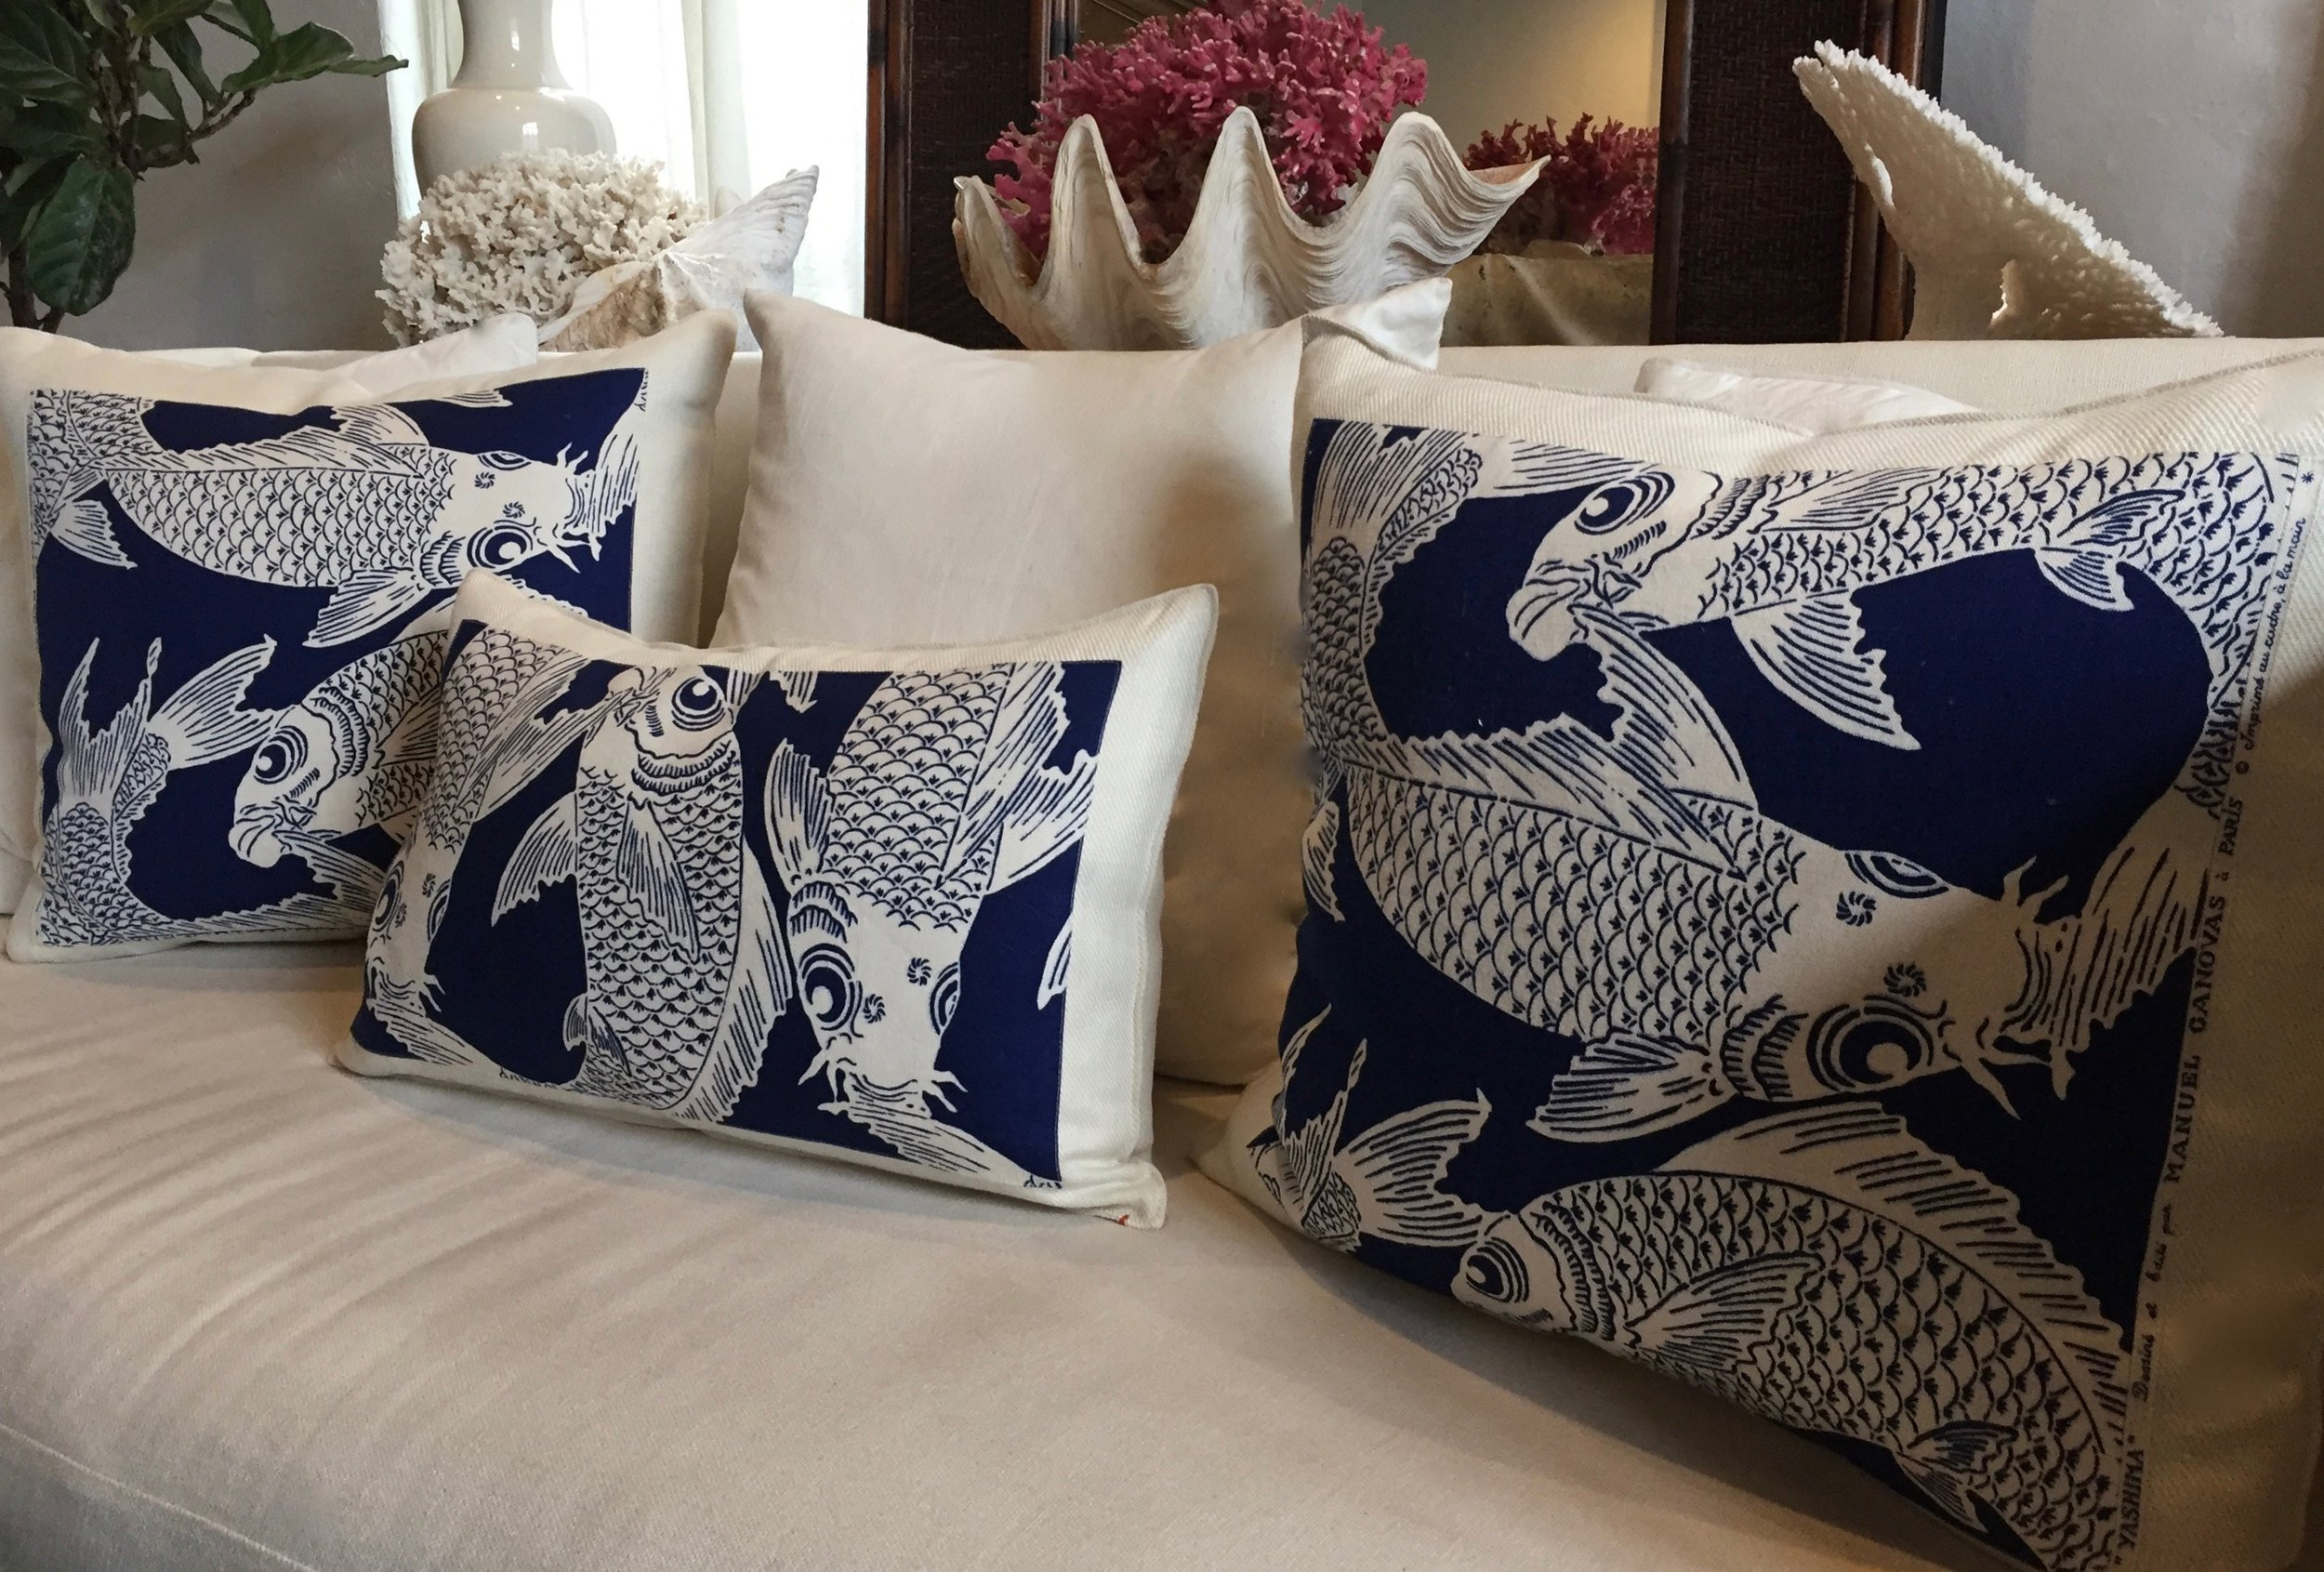 Koi indigo vintage fabric - we are now taking orders for the new collection